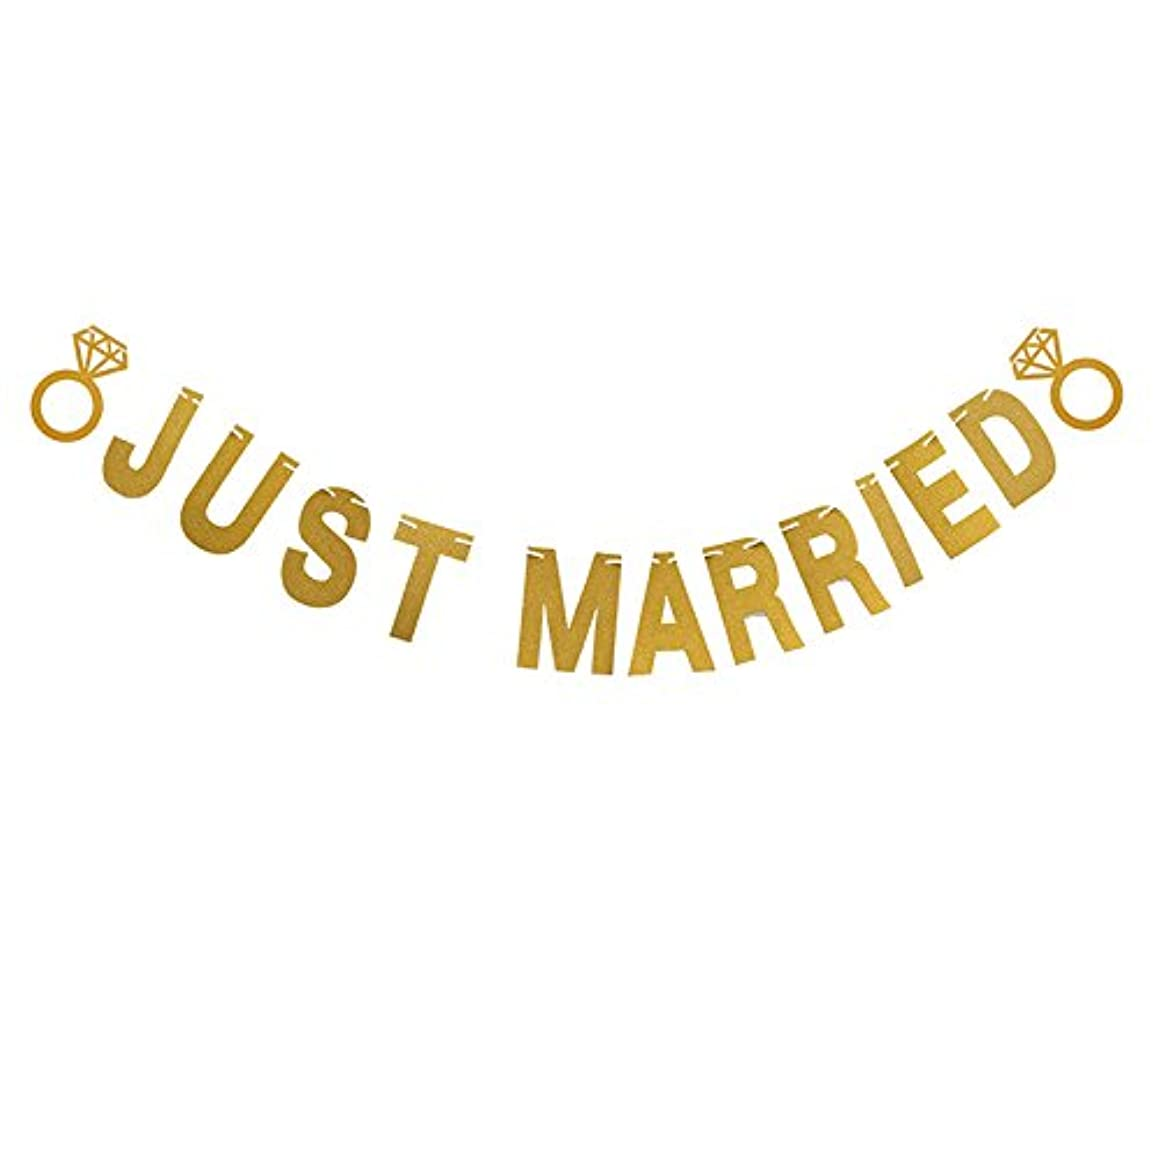 Just Married Wedding Banner, Glitter Letter Banner Hanging Pennant Party Banner Garland Photo Booth Props Decorations with 2 Diamond Pattern and String (Gold)